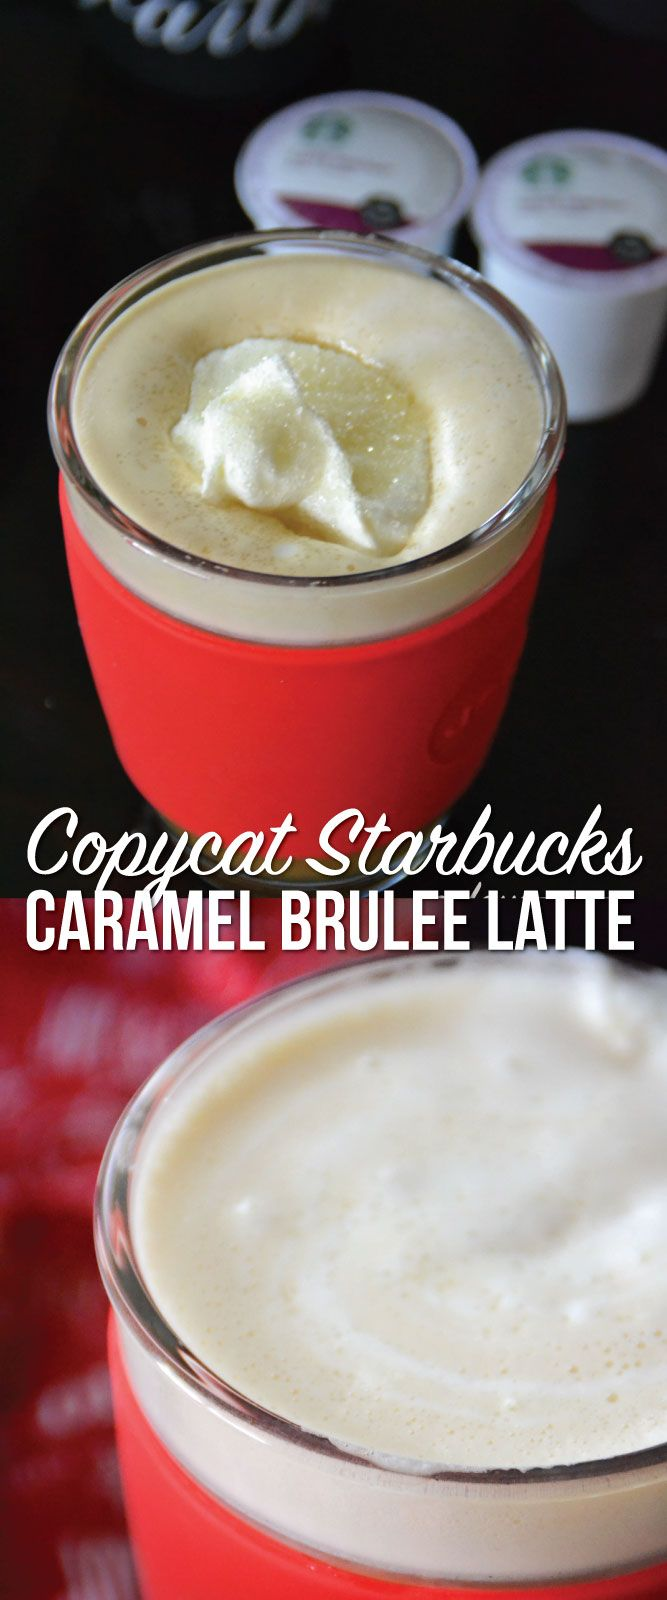 Copycat Starbucks Caramel Brulee Latte recipe. This is totally on my to do list for this weekend!